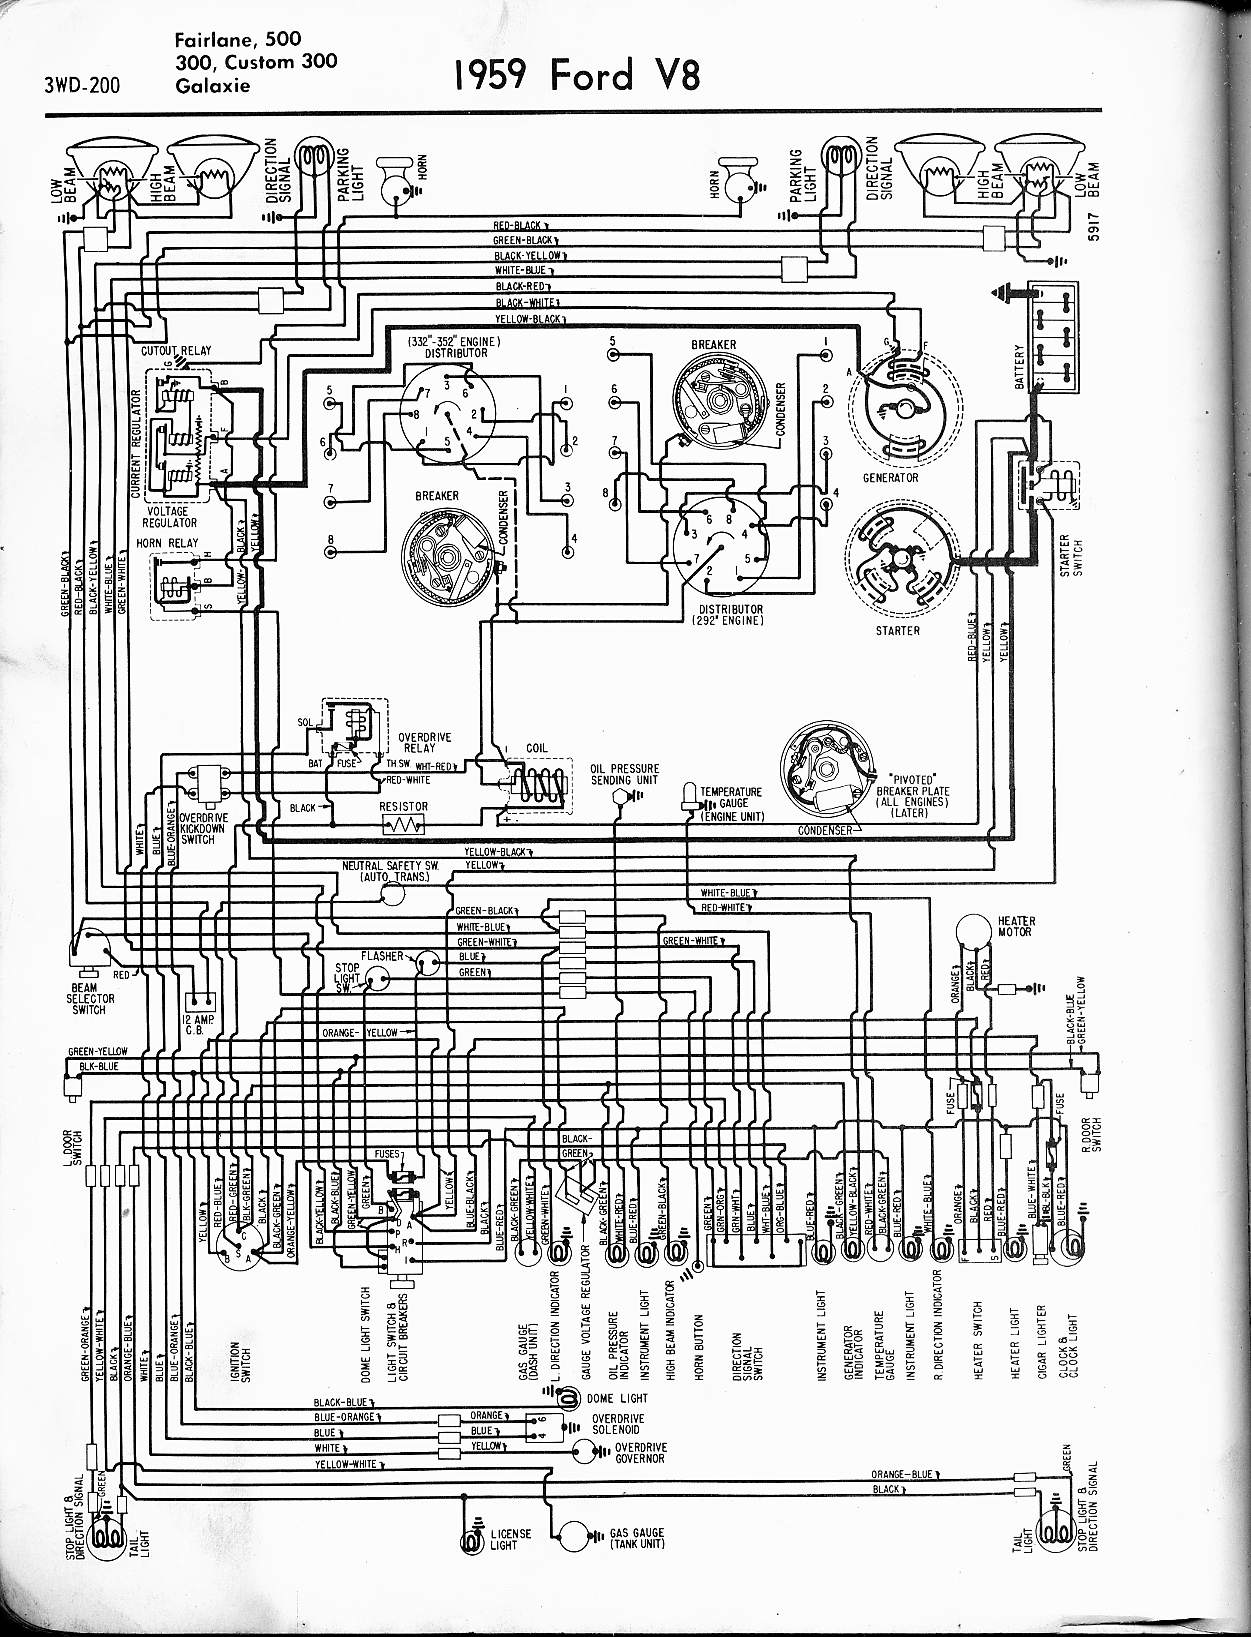 wiring diagram 1968 ford galaxie 500 wiring diagram expert Ford Wiring Harness Diagrams